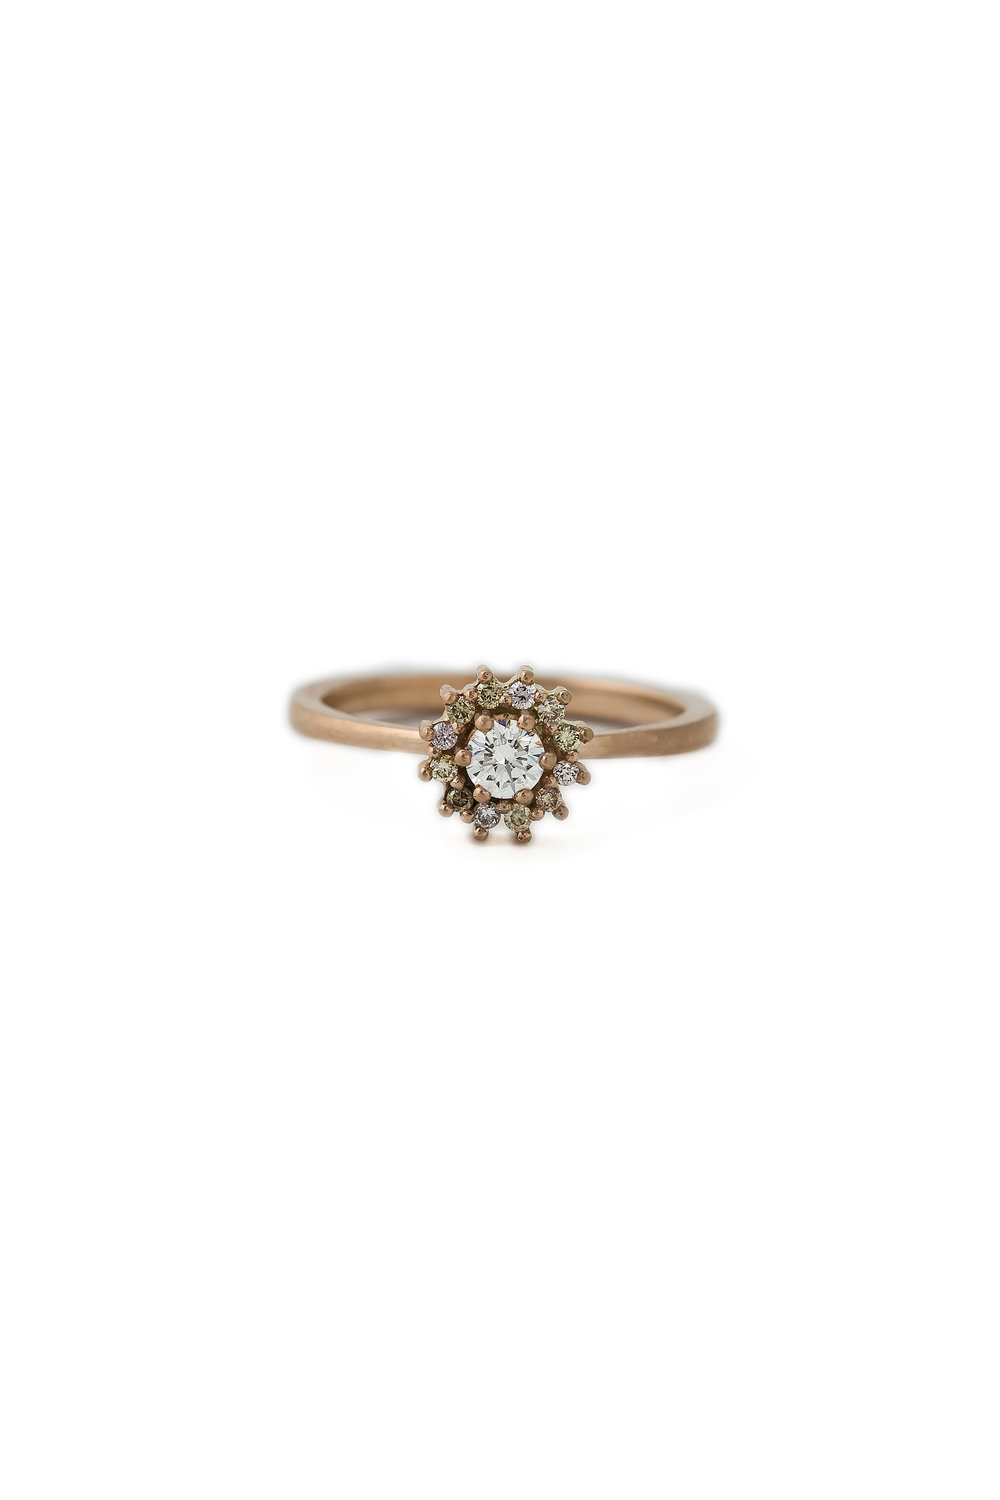 Multi coloured diamond halo ring in rose gold, £2900